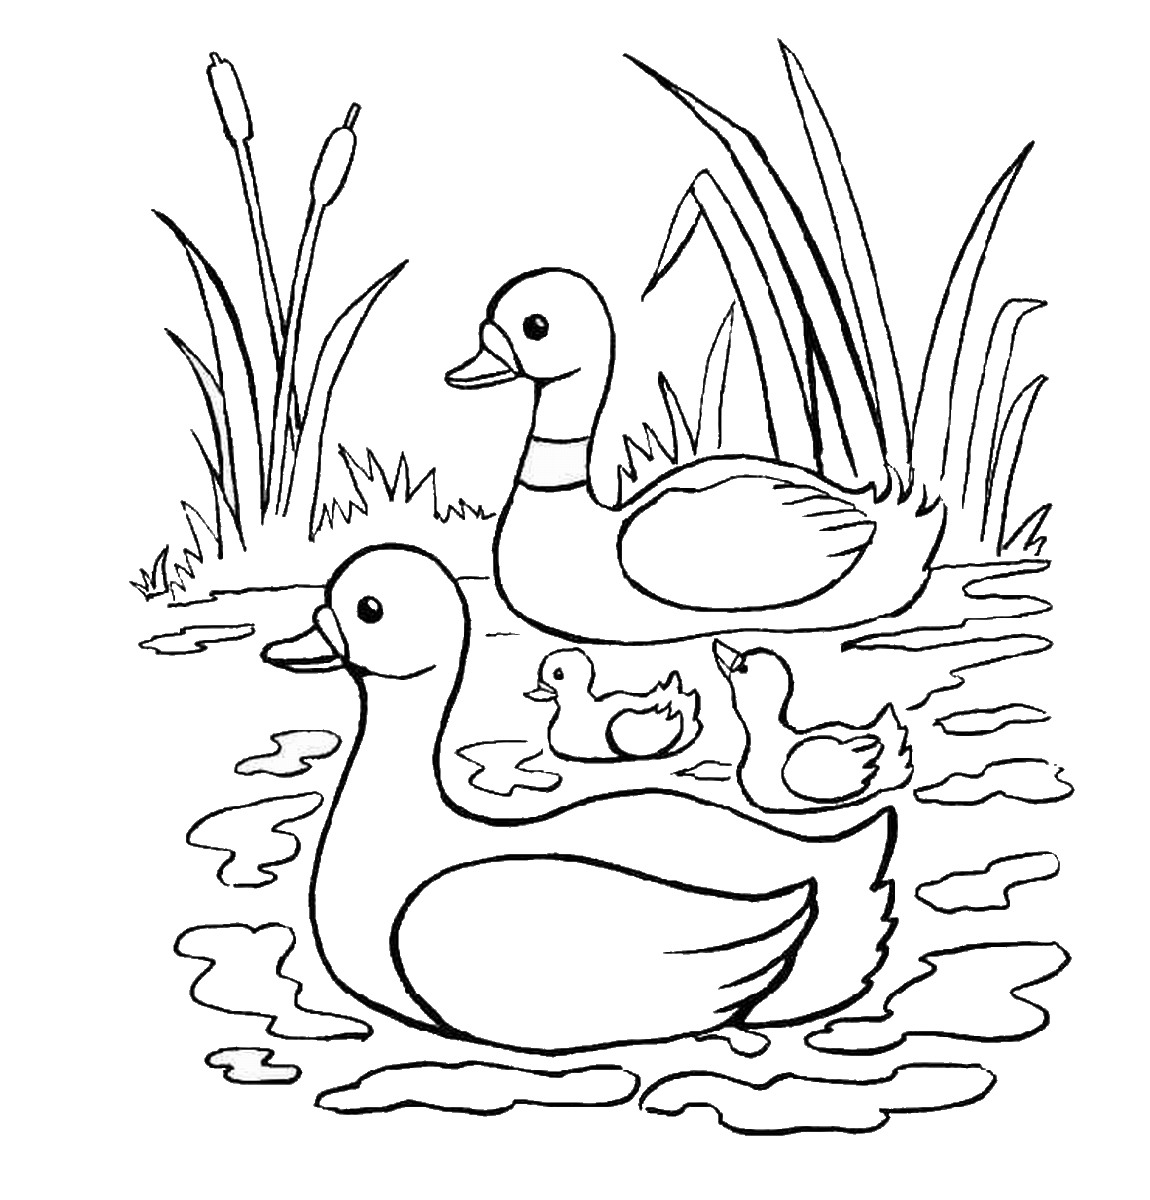 coloring duck pictures free printable duck coloring pages for kids animal place coloring duck pictures